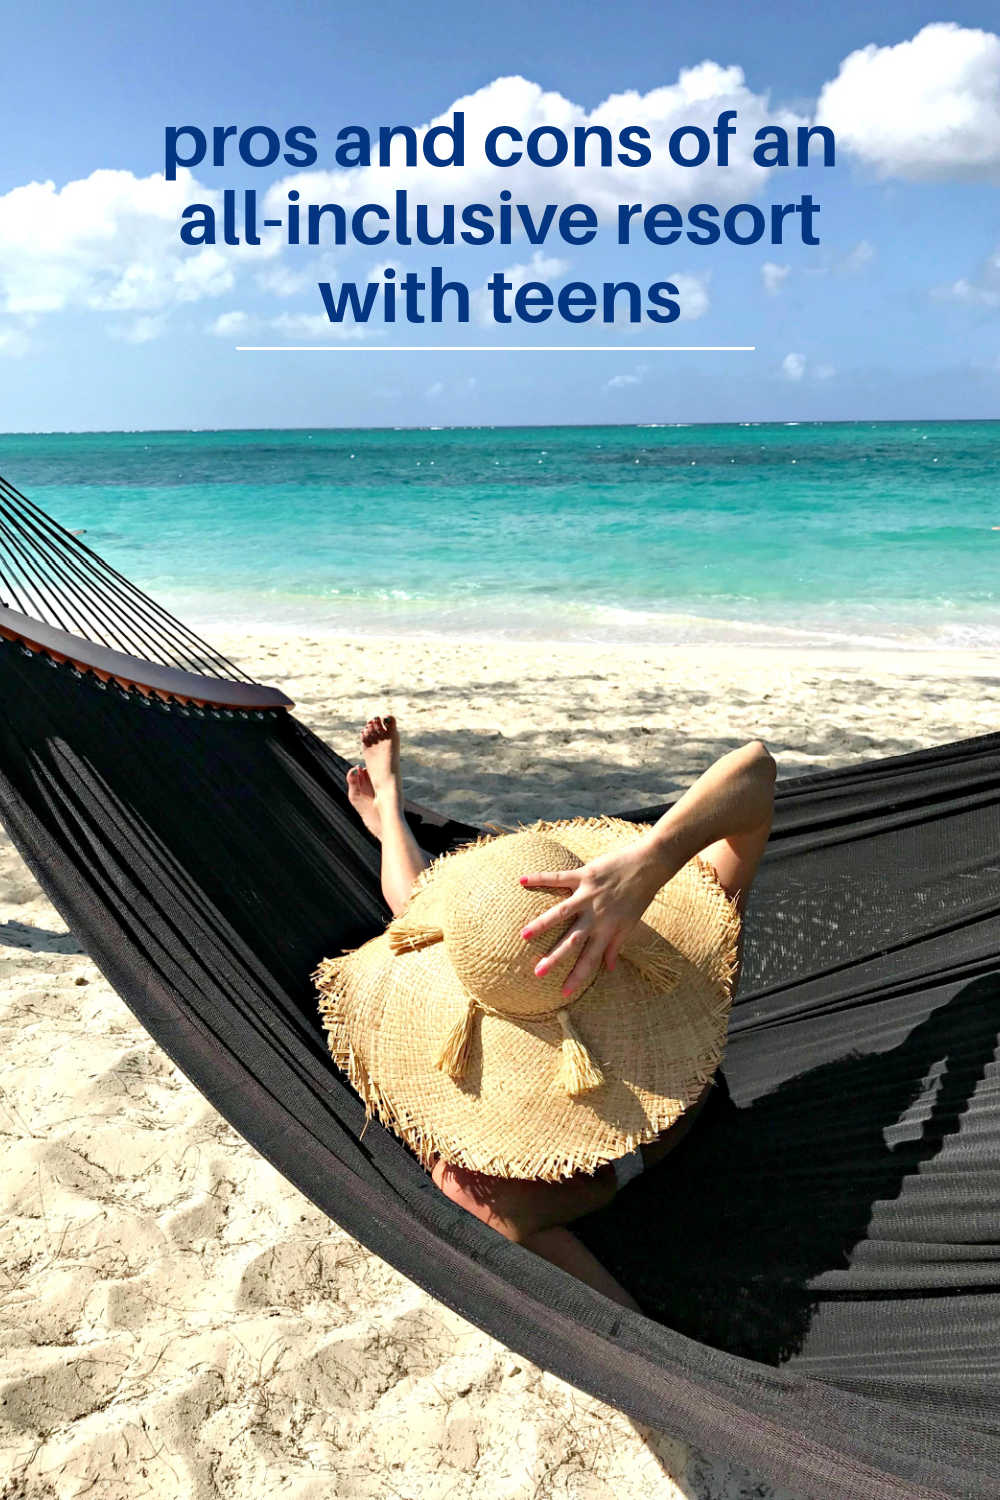 ALL INCLUSIVE RESORT WITH TEENS